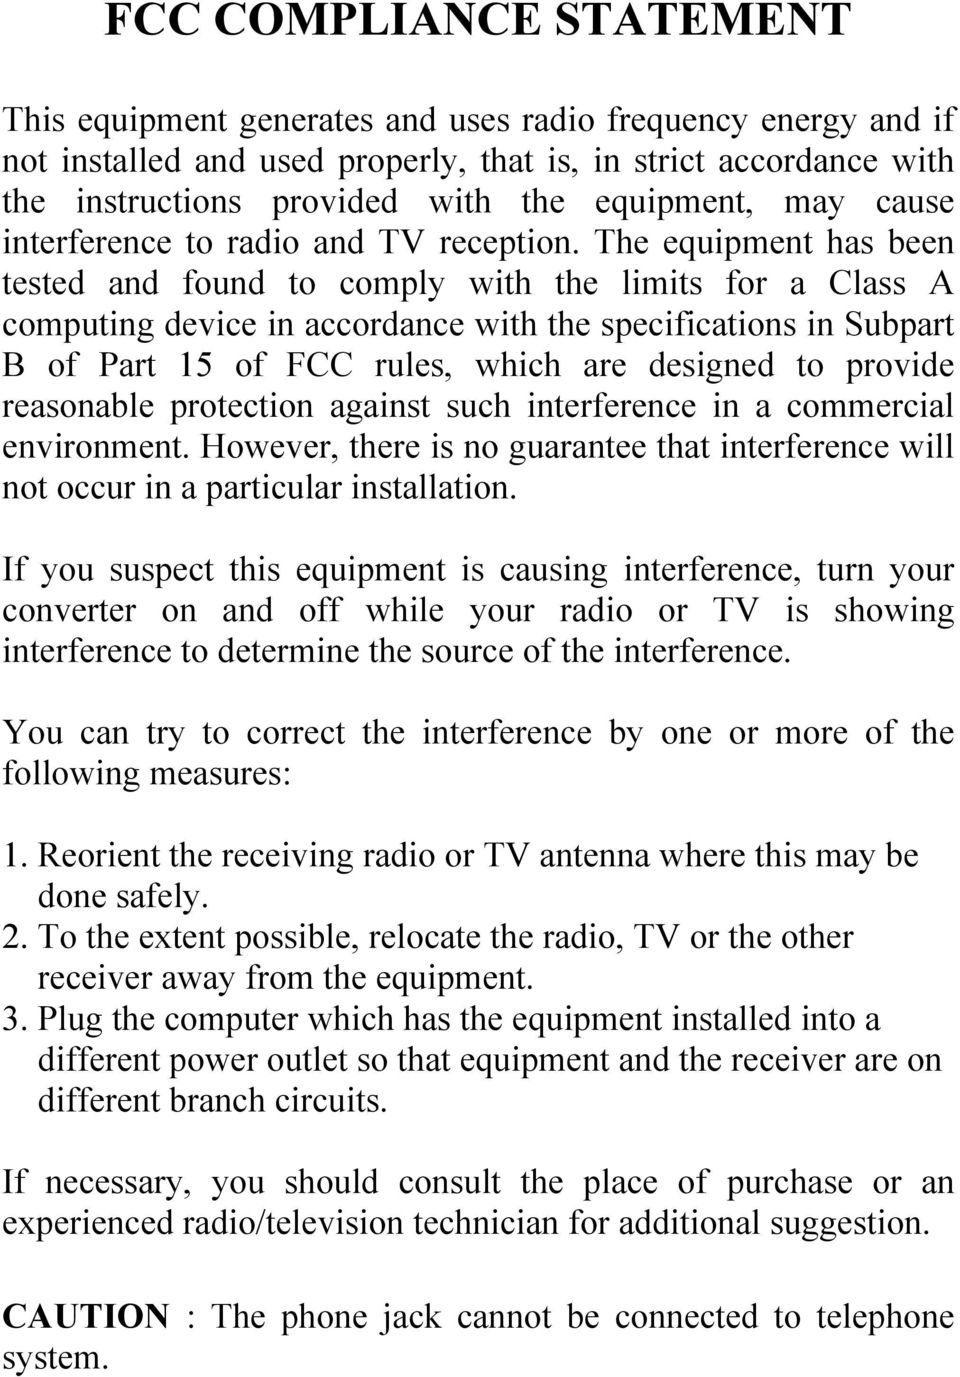 The equipment has been tested and found to comply with the limits for a Class A computing device in accordance with the specifications in Subpart B of Part 15 of FCC rules, which are designed to